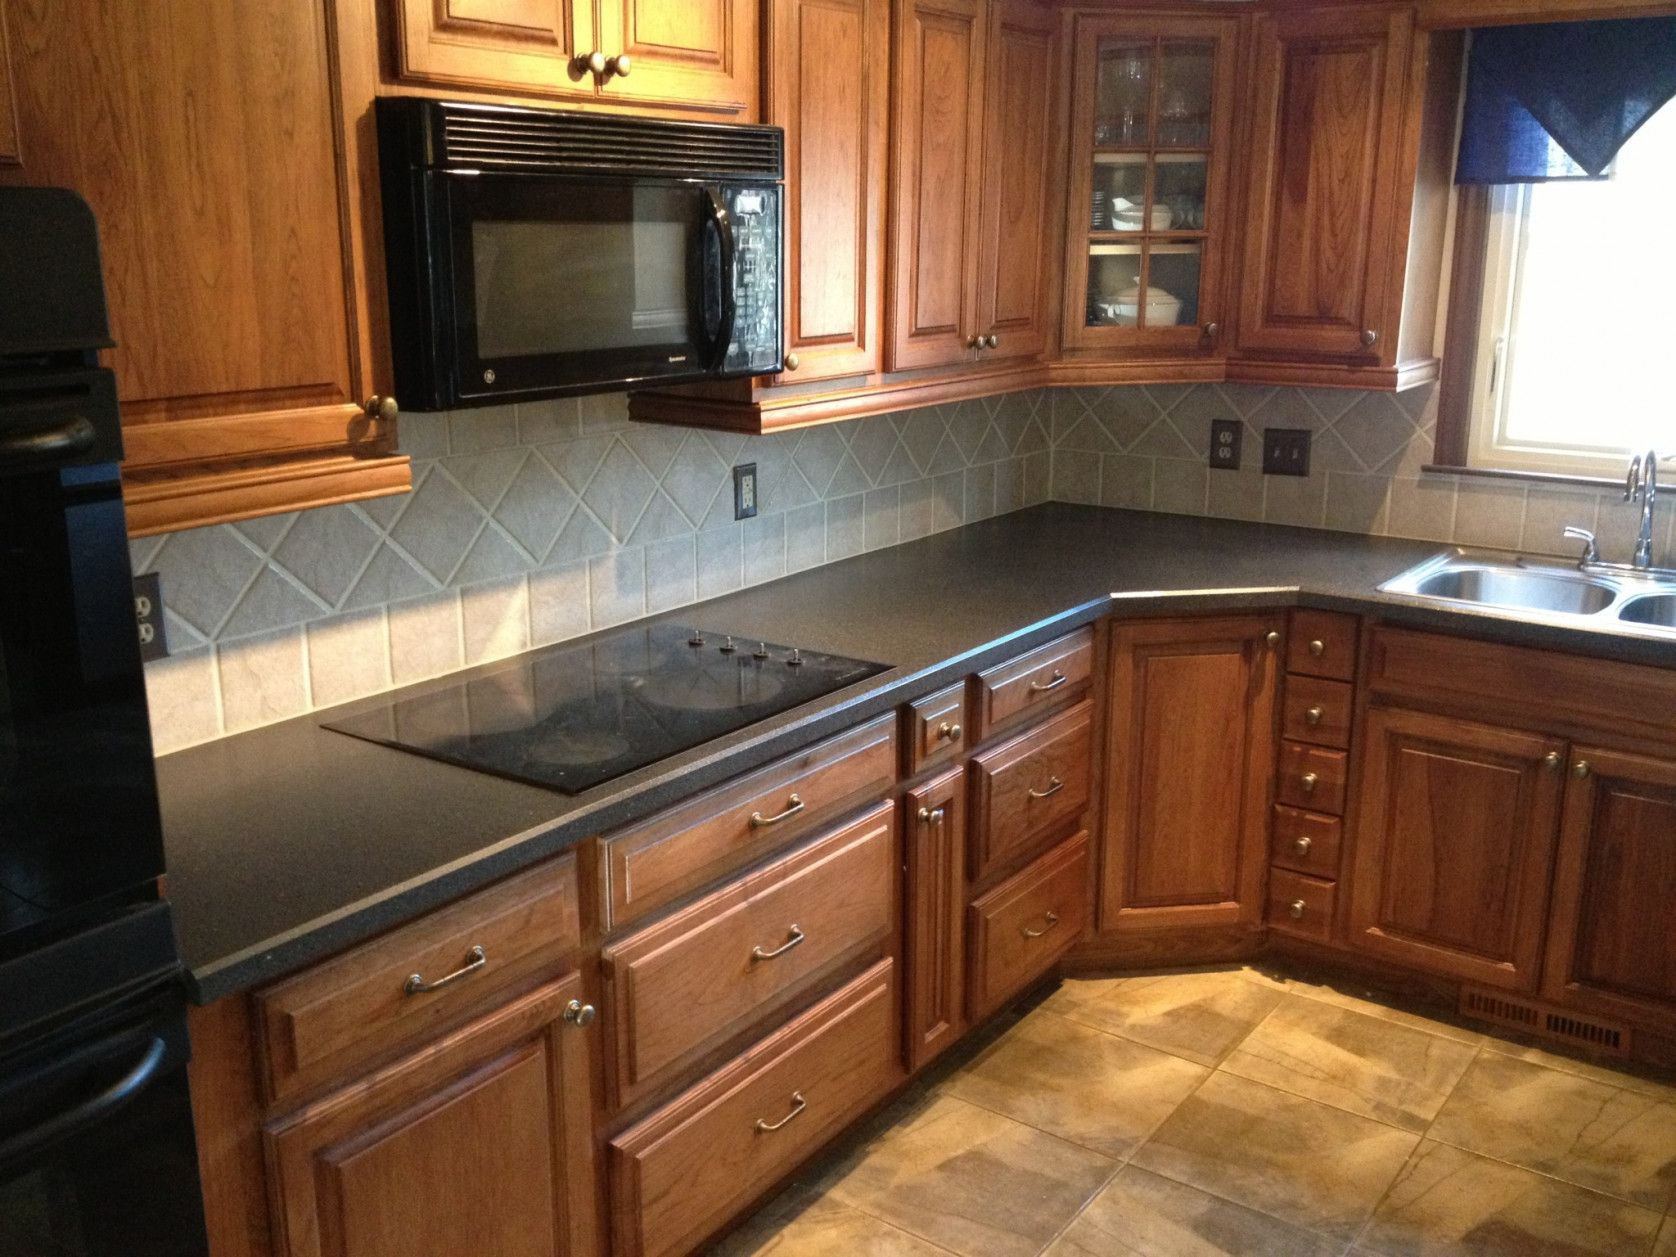 2019 How To Refinish Old Cabinets Kitchen Design And Layout Ideas Check More At